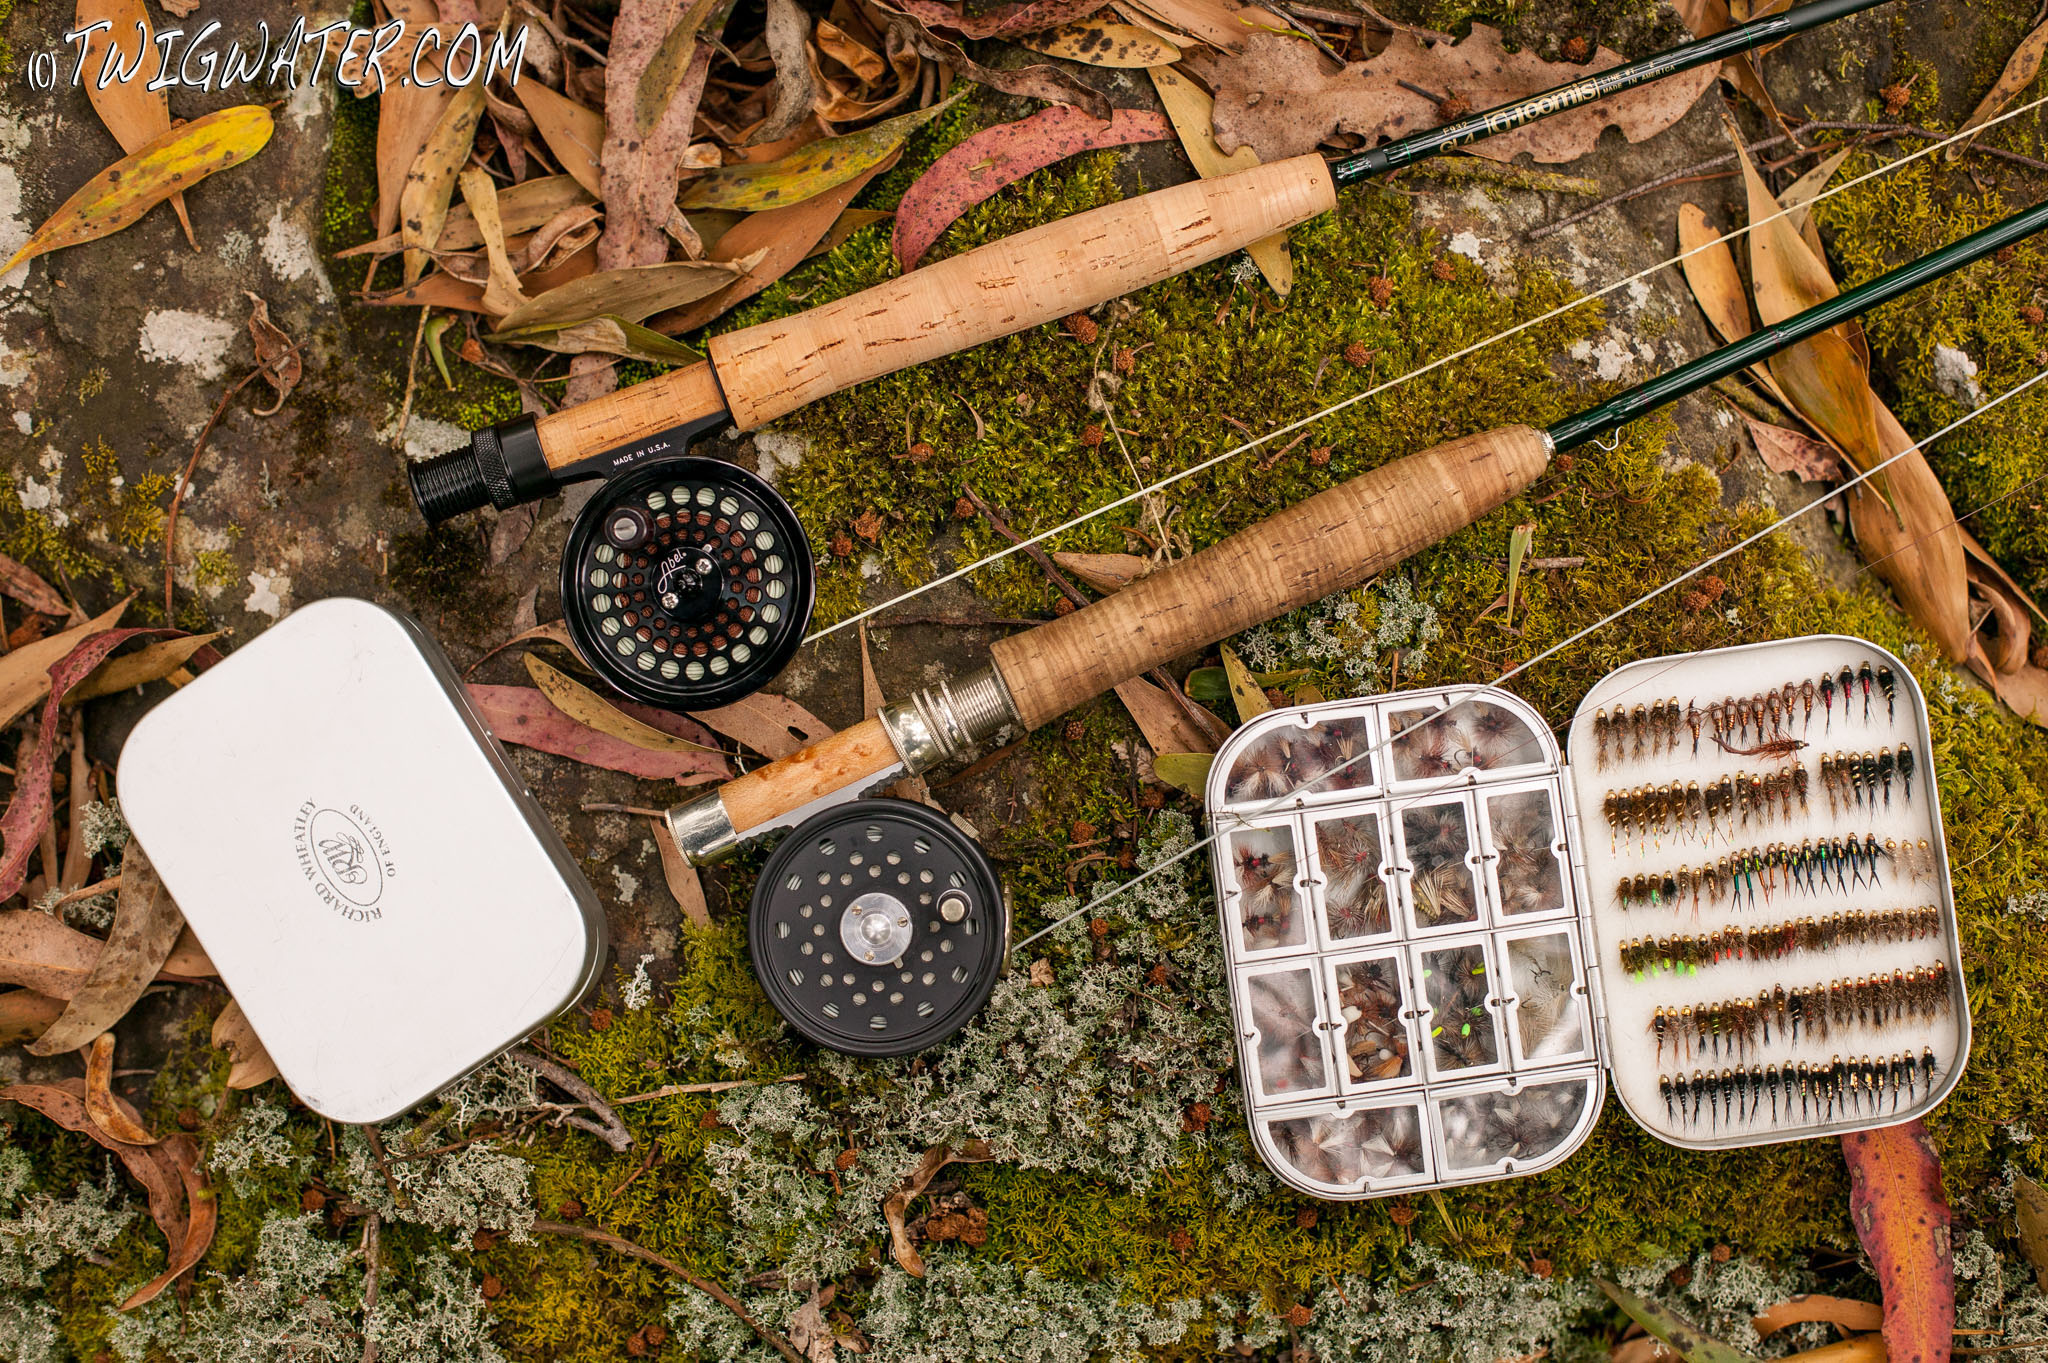 Wheatley Fly Boxes and twig rods